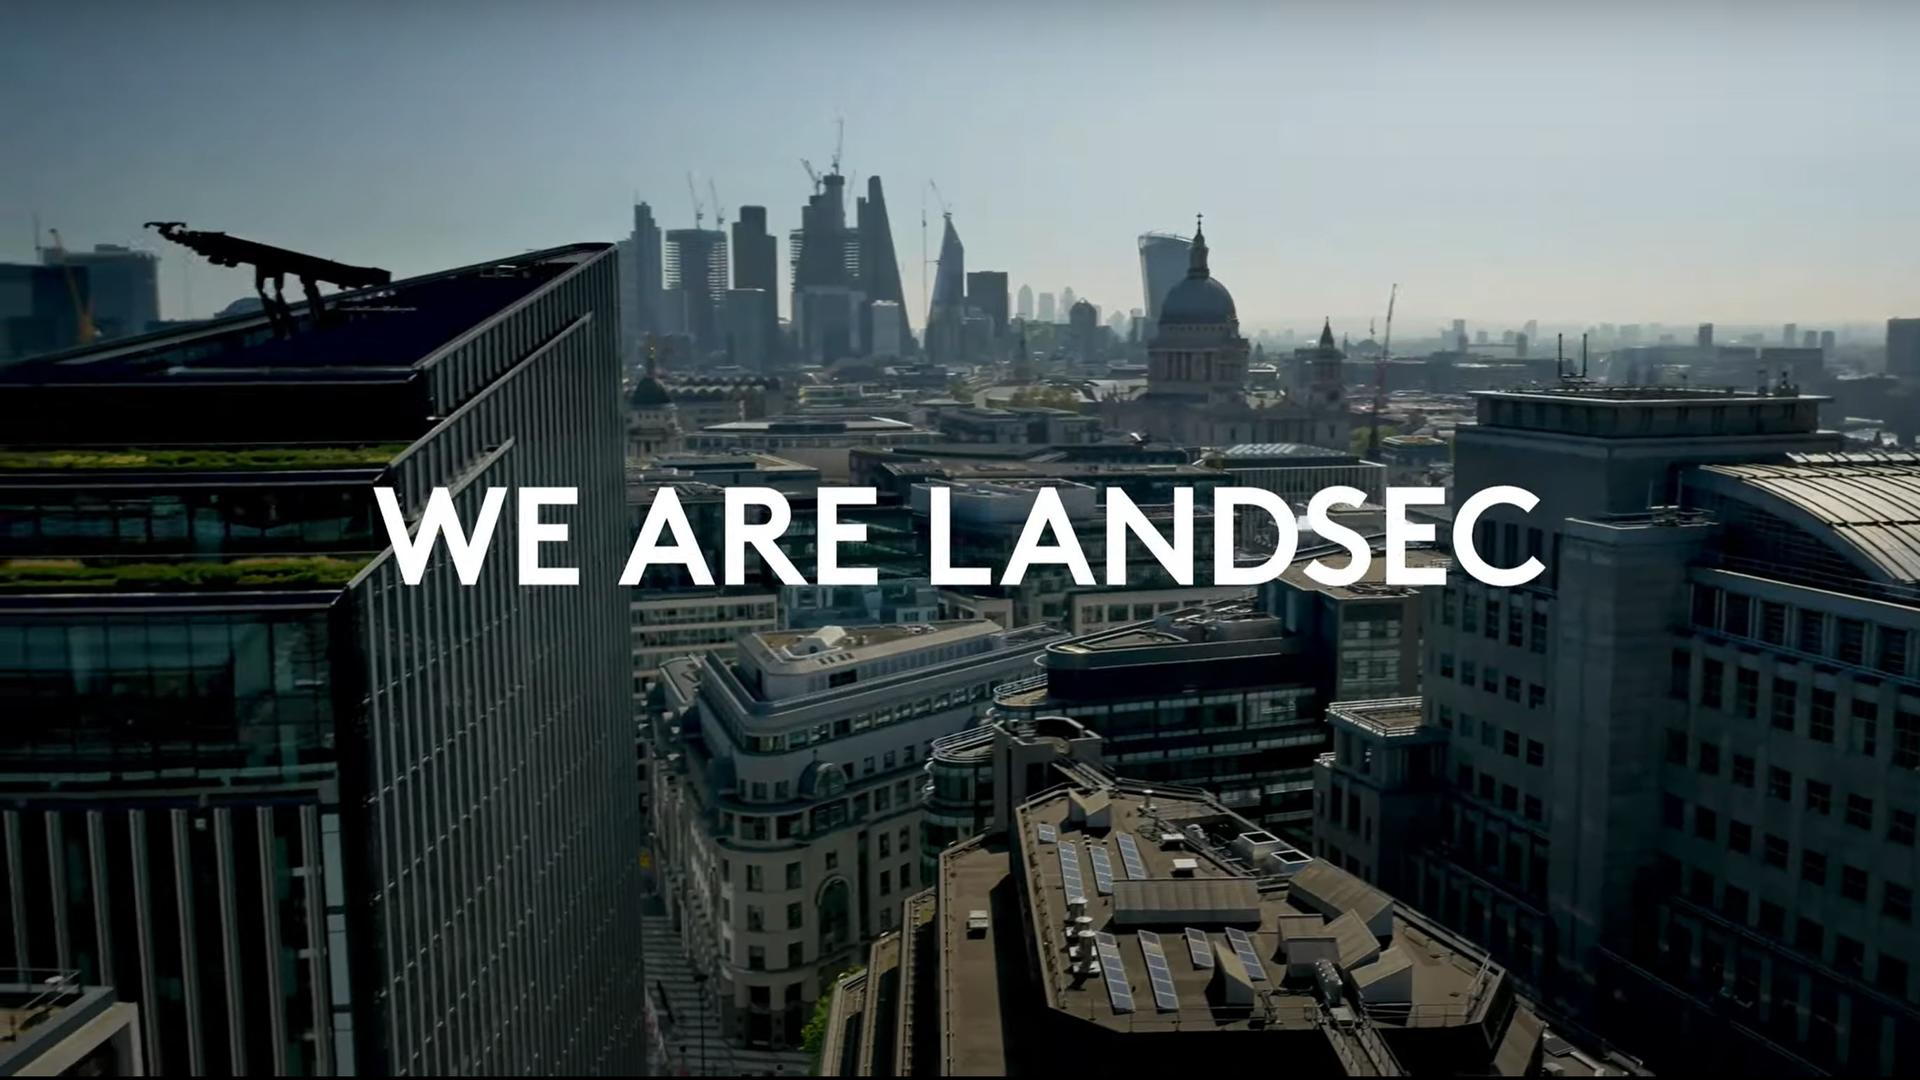 We are landsec